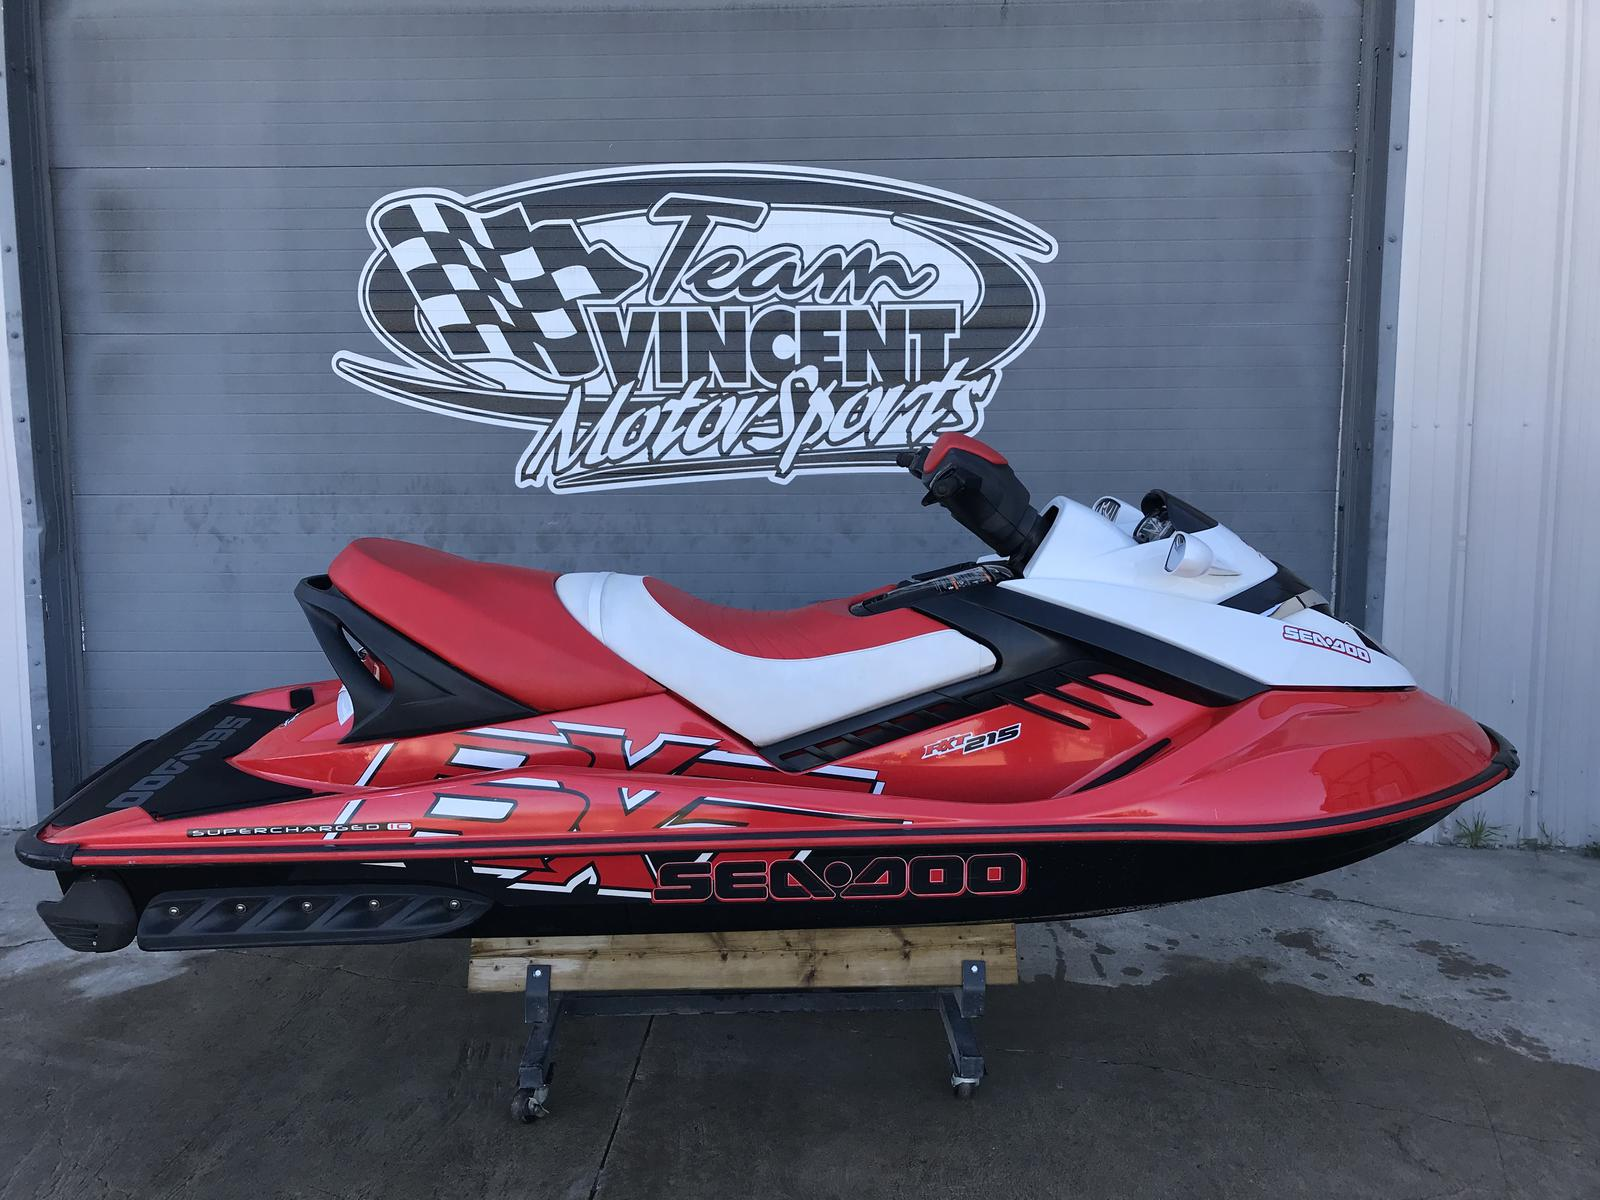 For Sale: 2007 Sea Doo Pwc Rxt 215 ft<br/>Team Vincent Motorsports Inc